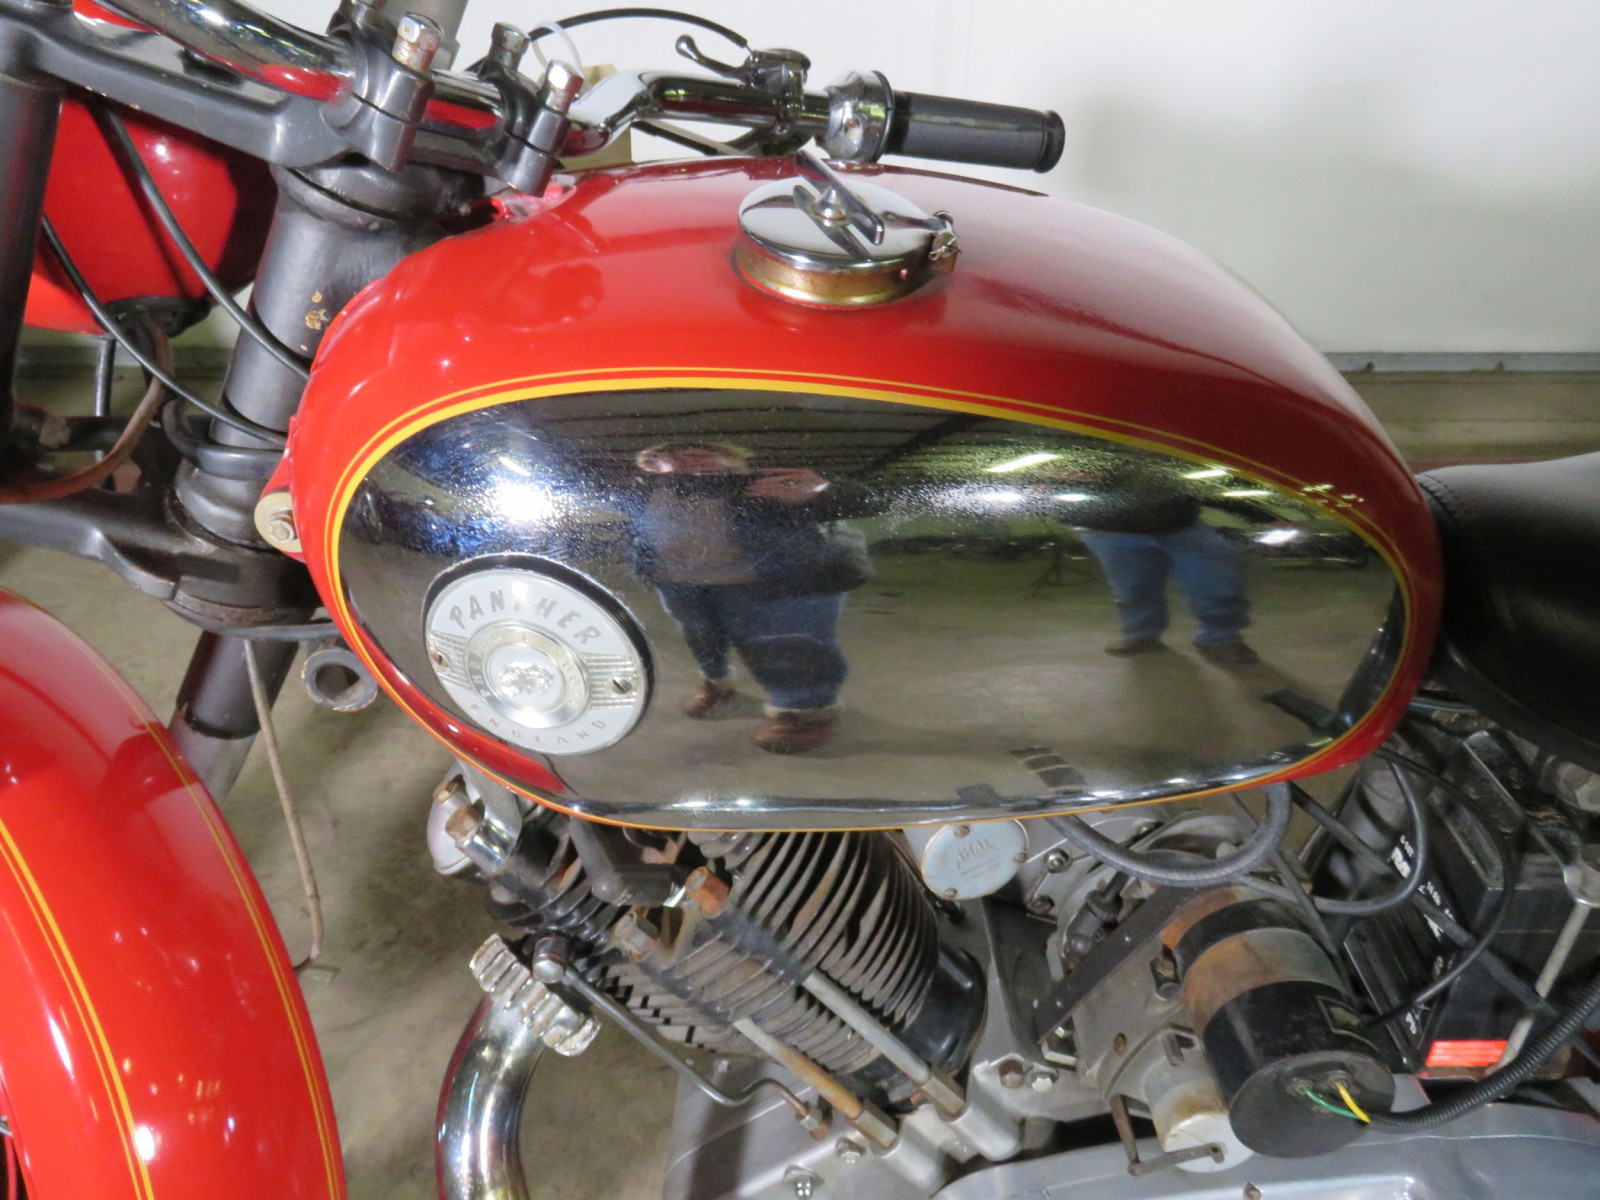 1965 Panther Model 120 Motorcycle - Image 6